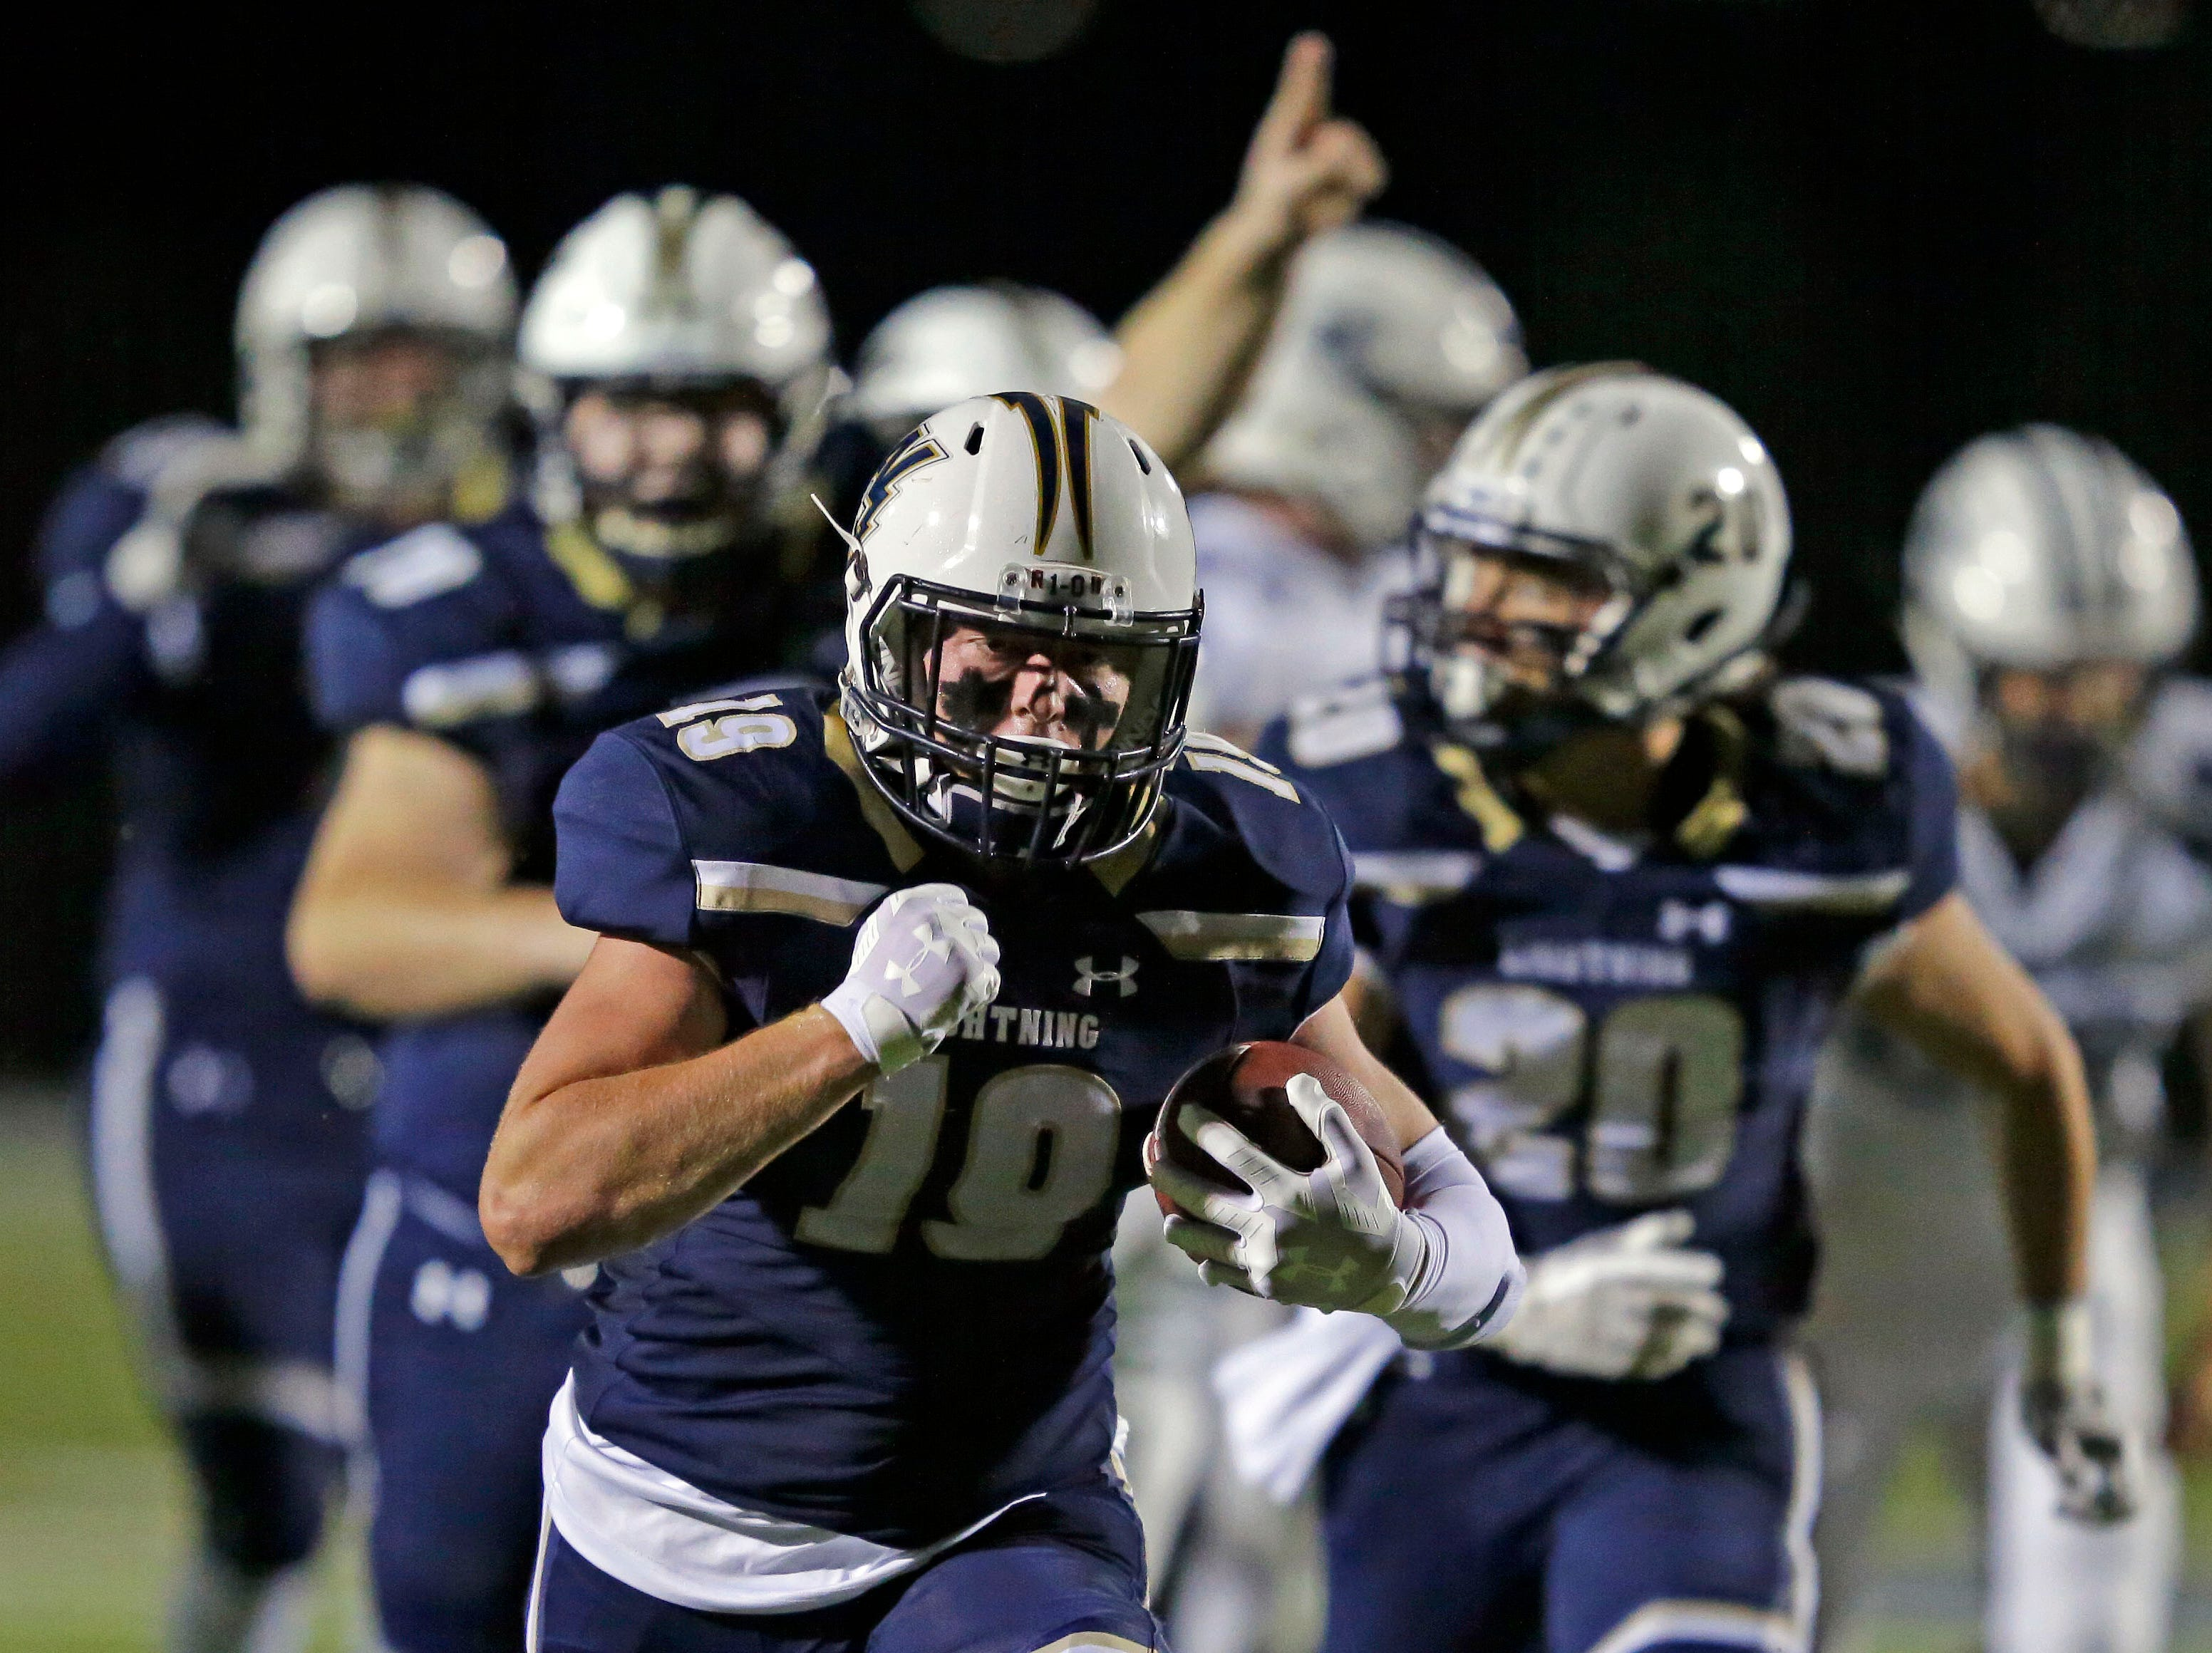 Ryan Balck of Appleton North heads for the end zone against Hudson in a WIAA Division 1 football playoff game Friday, October 19, 2018, at Paul Engen Field in Appleton, Wis.